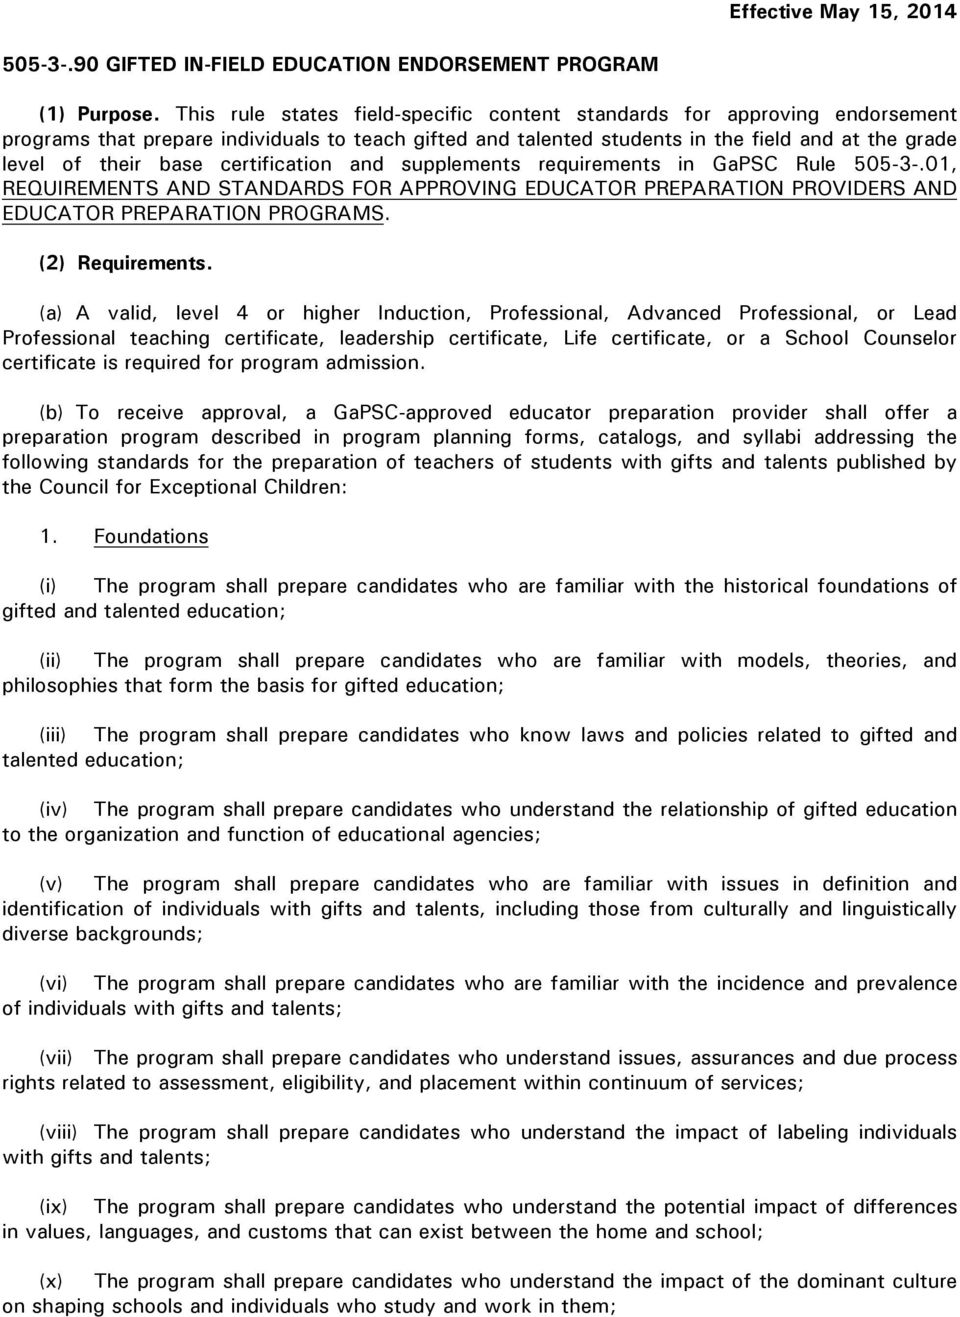 certification and supplements requirements in GaPSC Rule 505-3-.01, REQUIREMENTS AND STANDARDS FOR APPROVING EDUCATOR PREPARATION PROVIDERS AND EDUCATOR PREPARATION PROGRAMS. (2) Requirements.